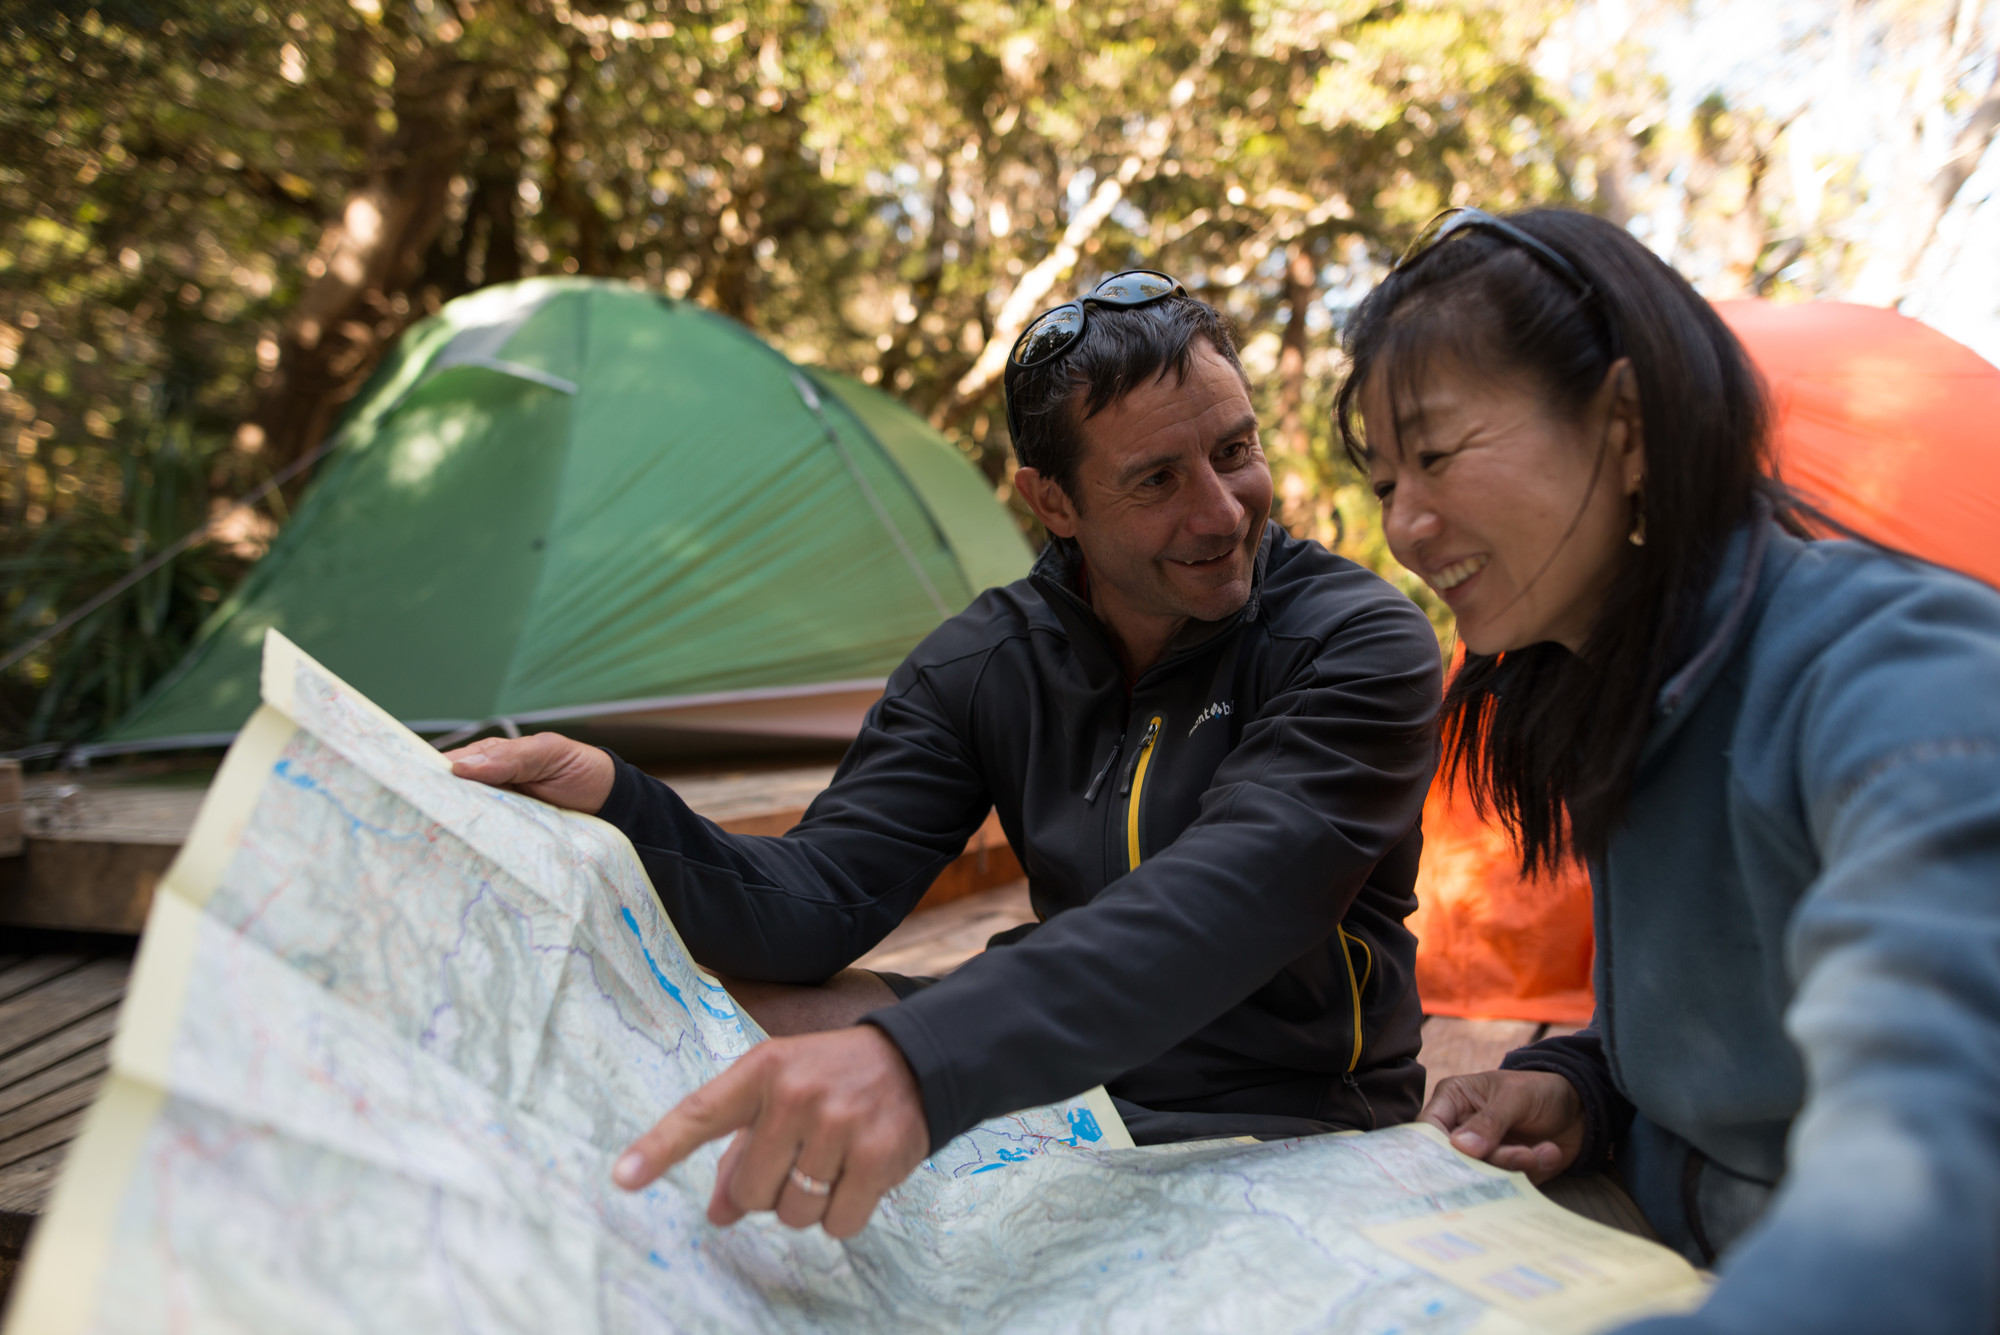 Two walkers looking at the Overland Track map siting infront of tents and plaforms at Waterfall Valley campsite